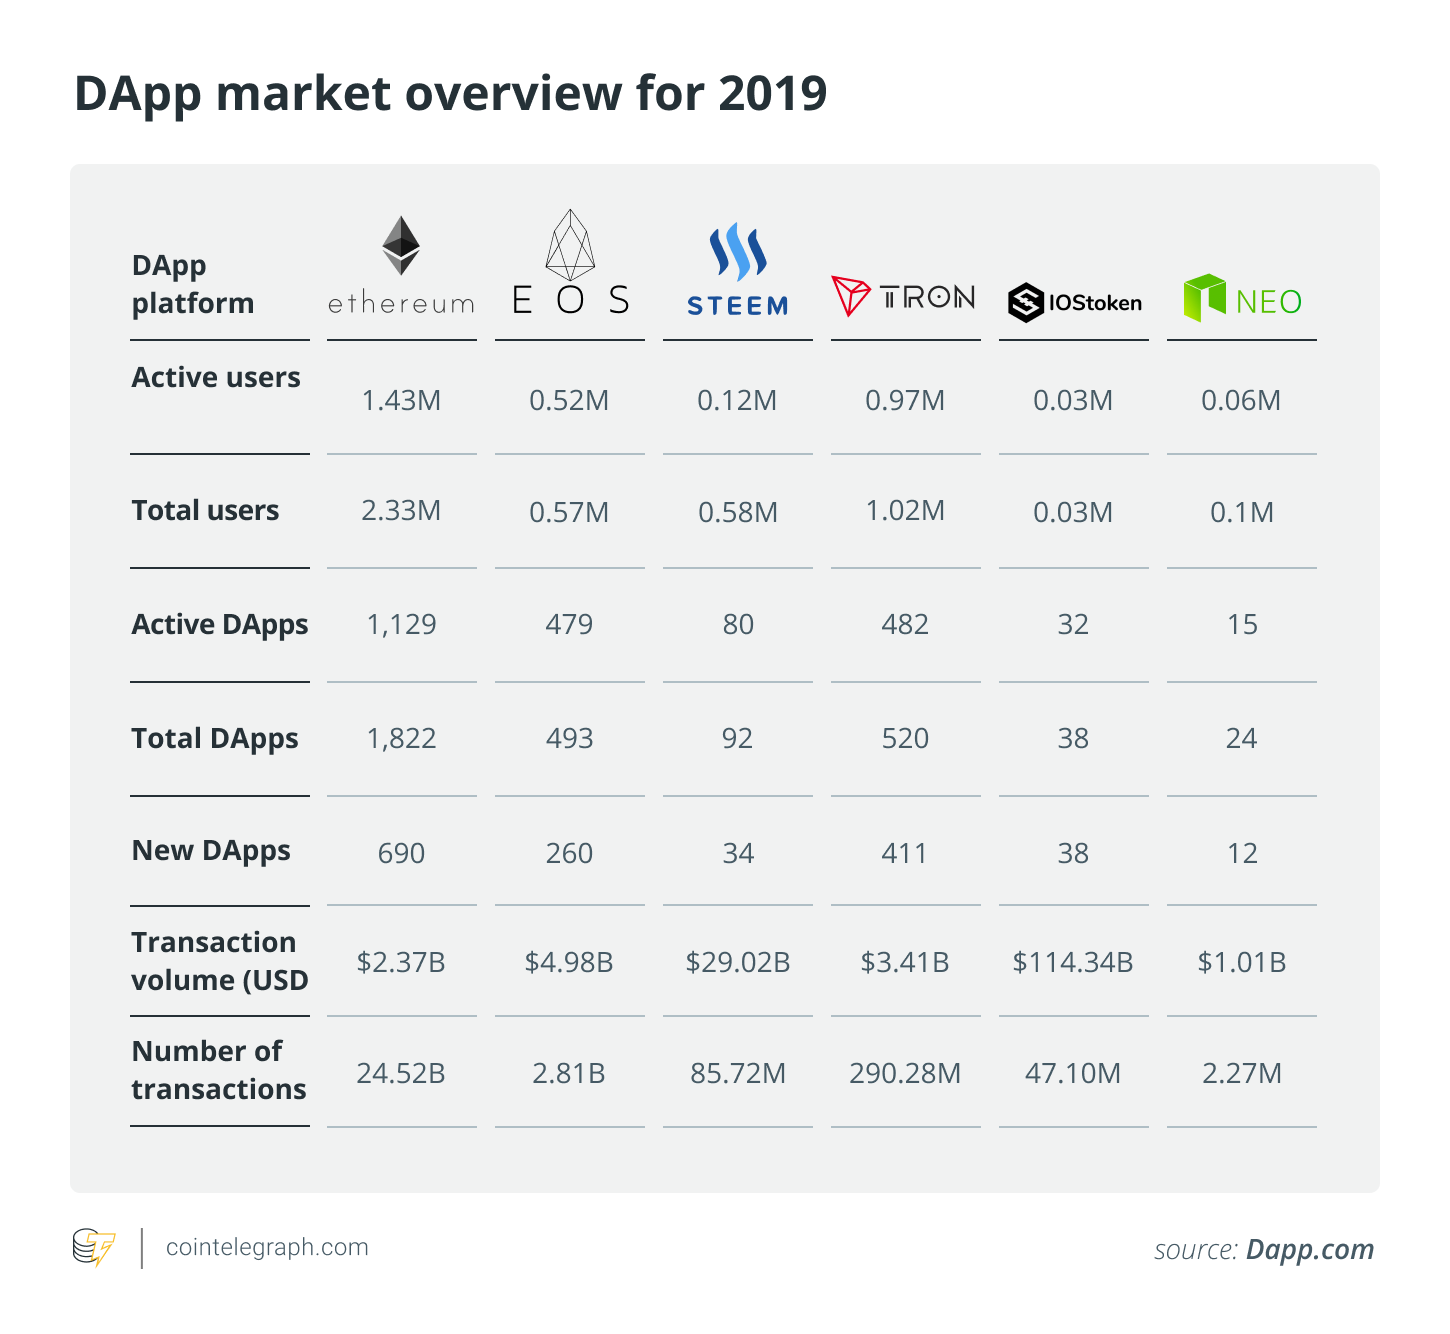 DApp market overview for 2019